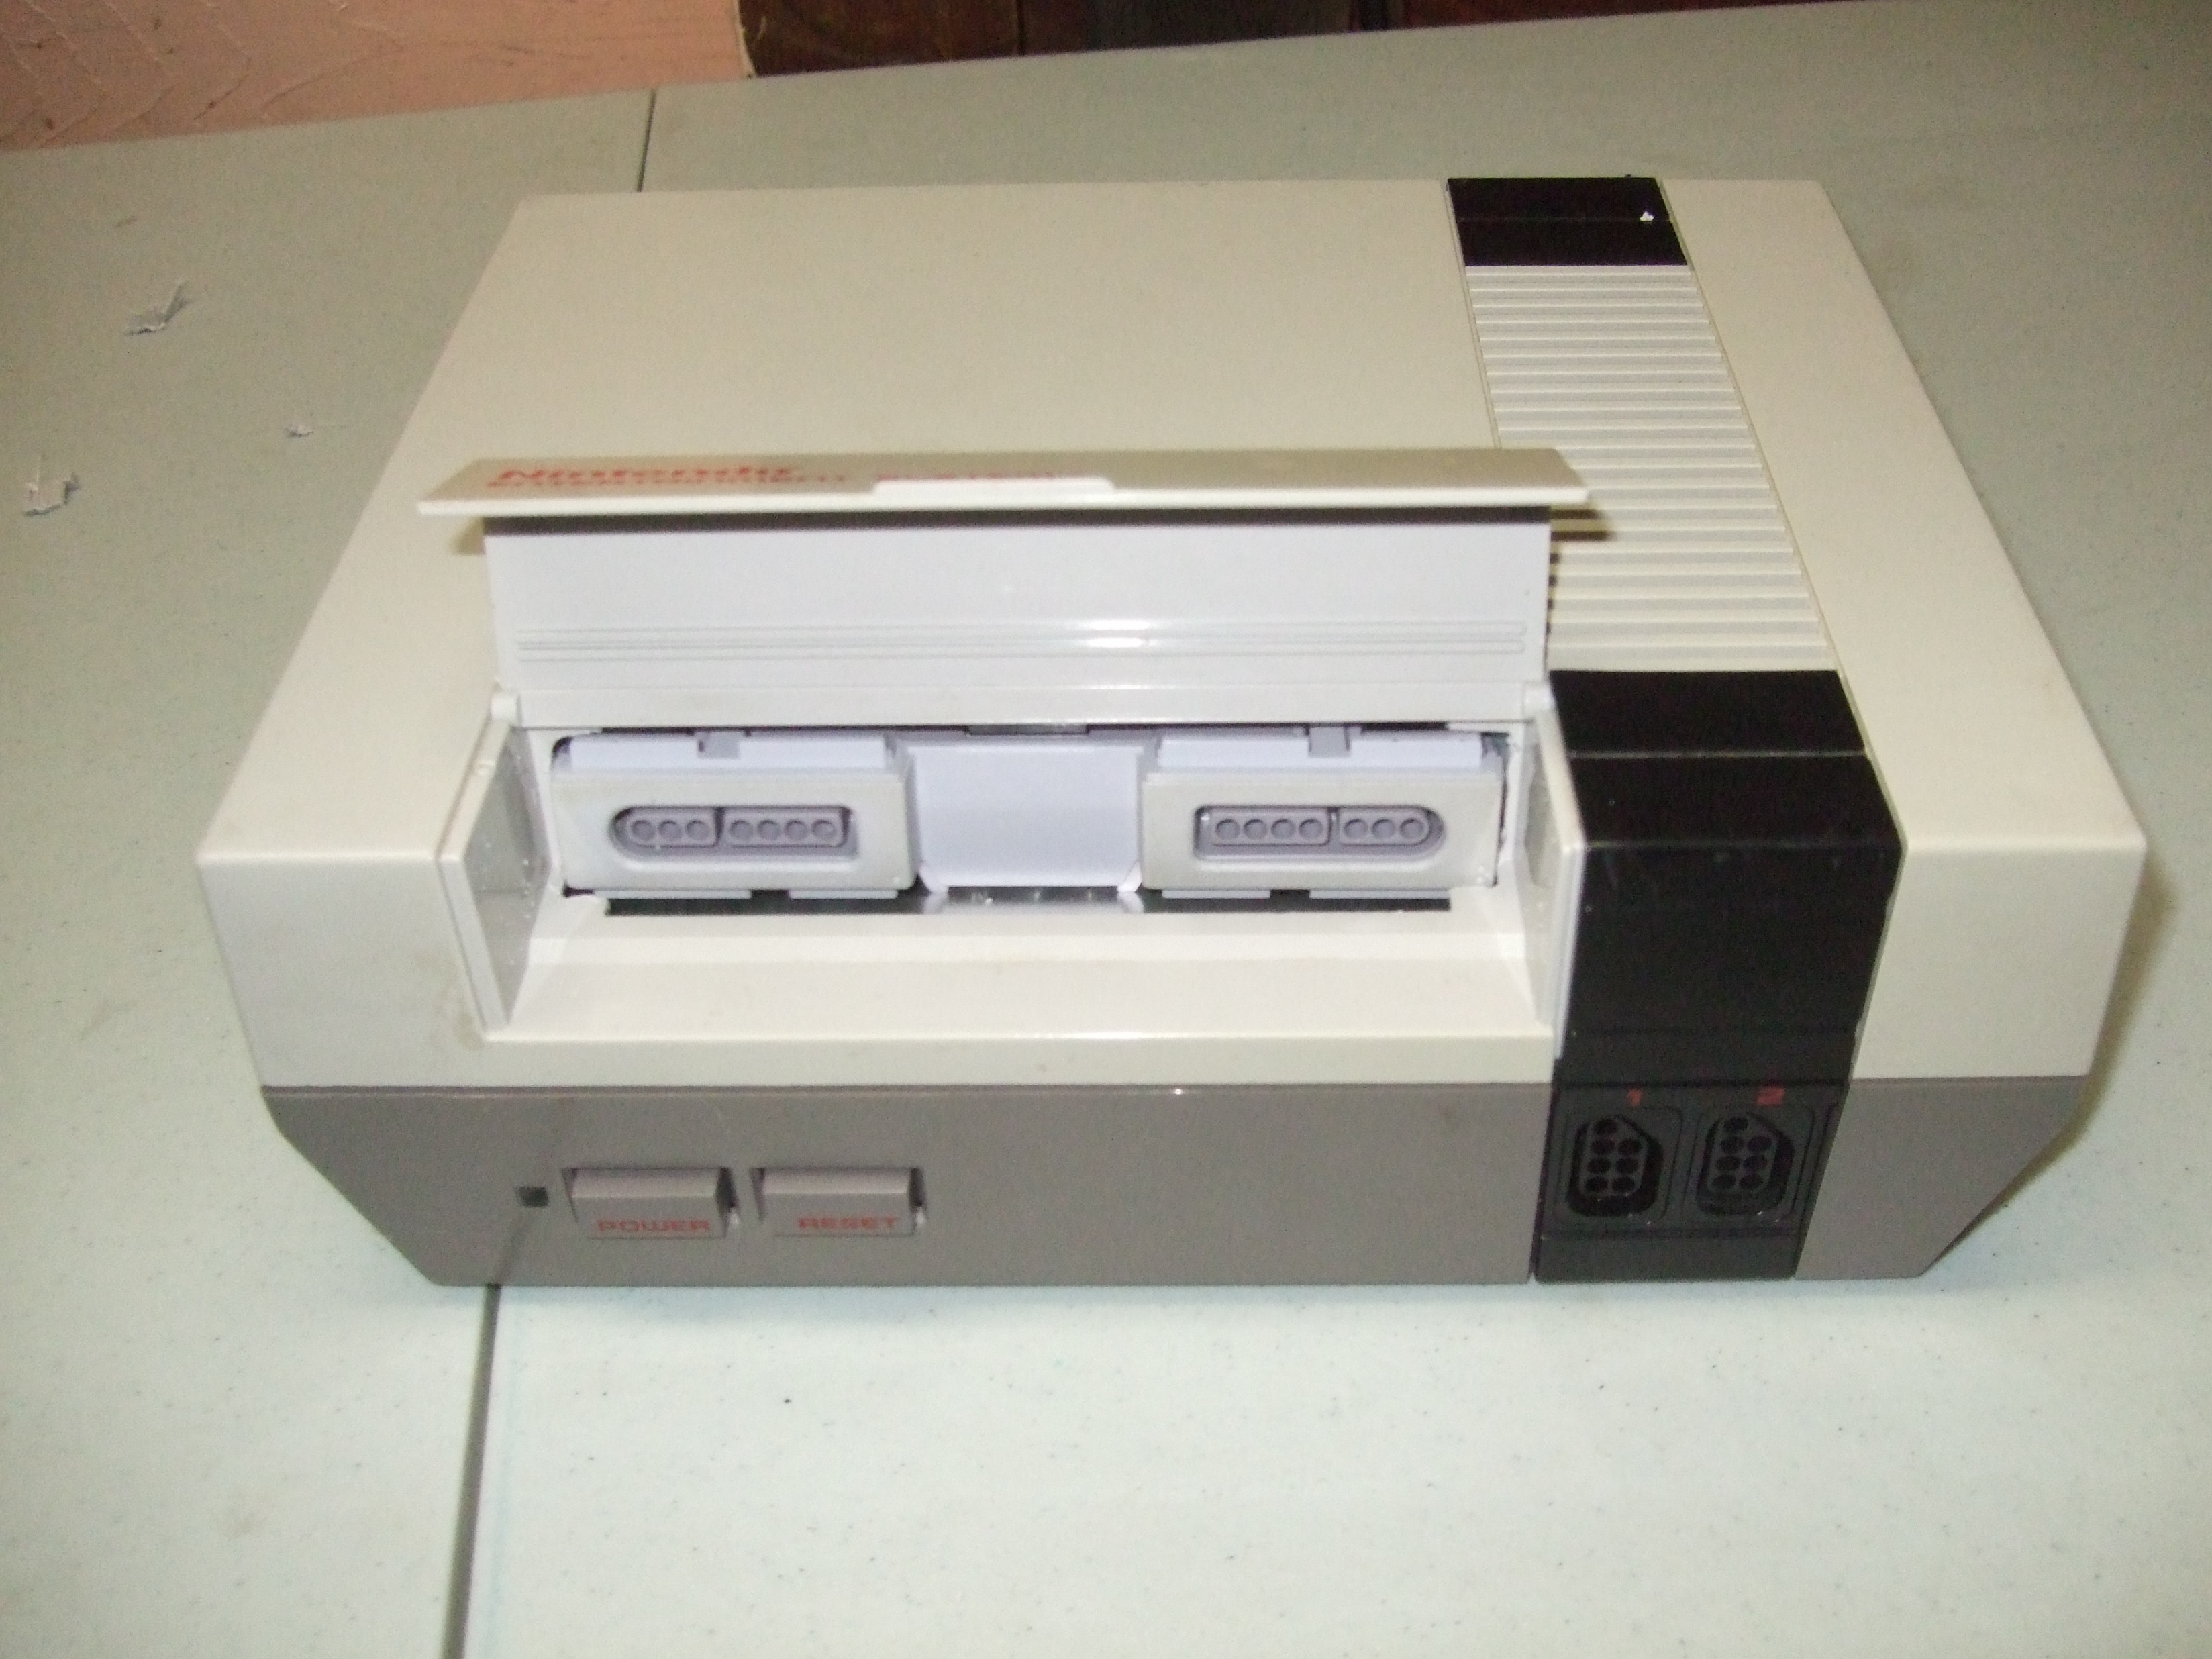 NES / SNES Ports to USB – This Guy Knows Nes Controller Wiring Diagram on nes controller disassembly, joystick connection diagram, nes controller schematic, nes controller cable, nes controller dimensions, nes joystick, xbox 360 controller diagram, nes controller circuit, nes controller plug, nes four score, playstation 3 connections diagram, nes pinouts, nes to usb, ps3 diagram,